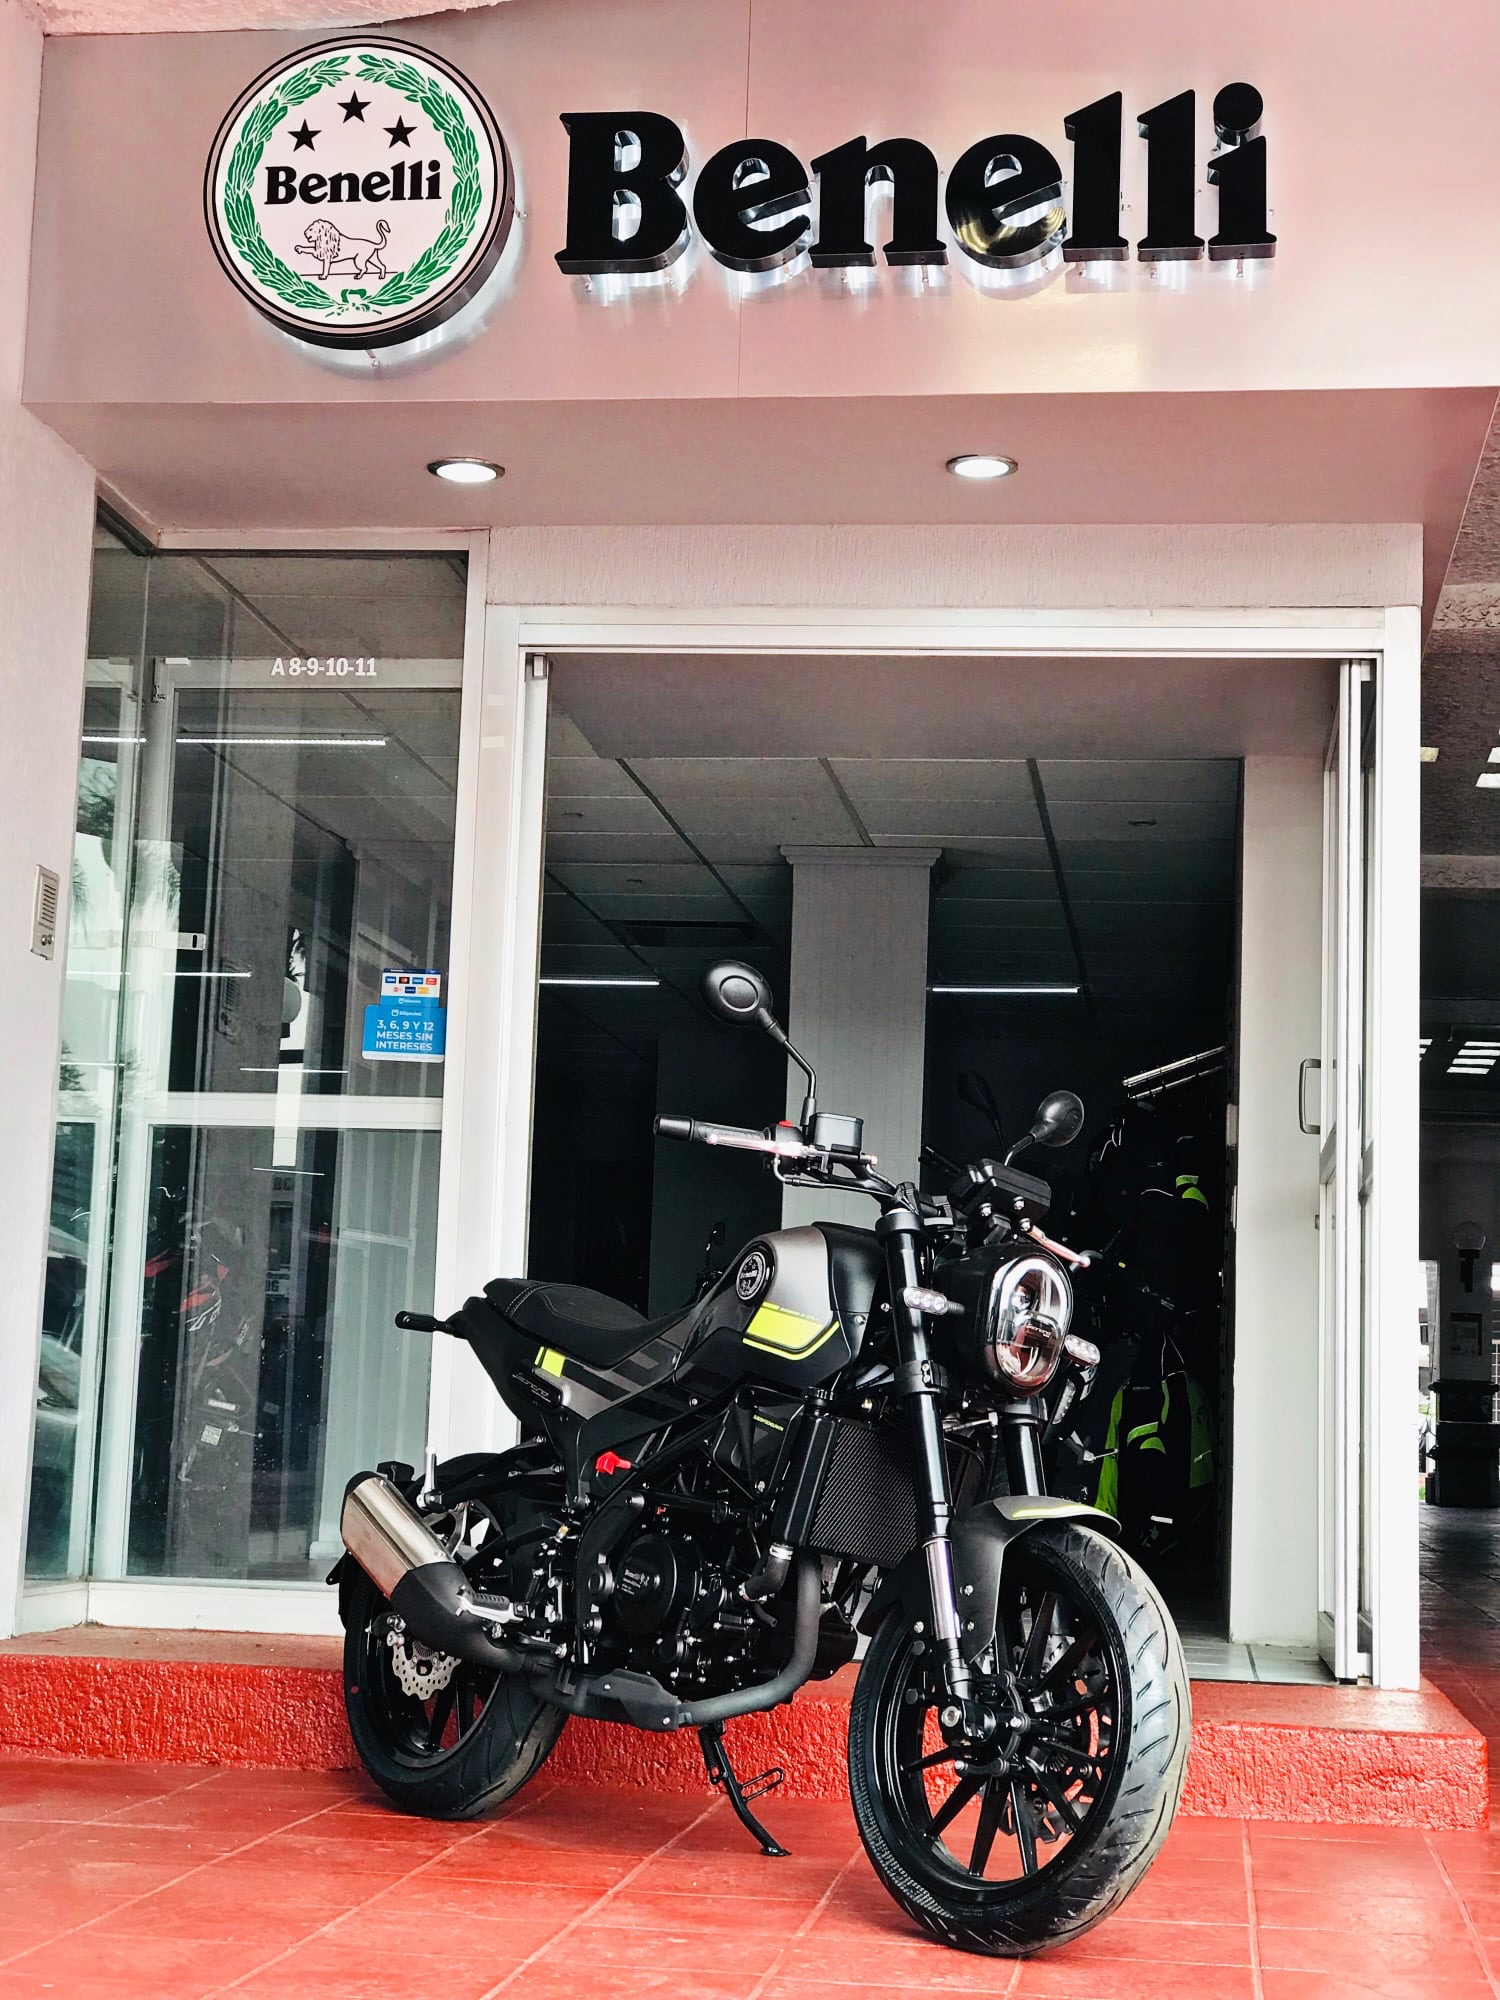 Benelli Gallery